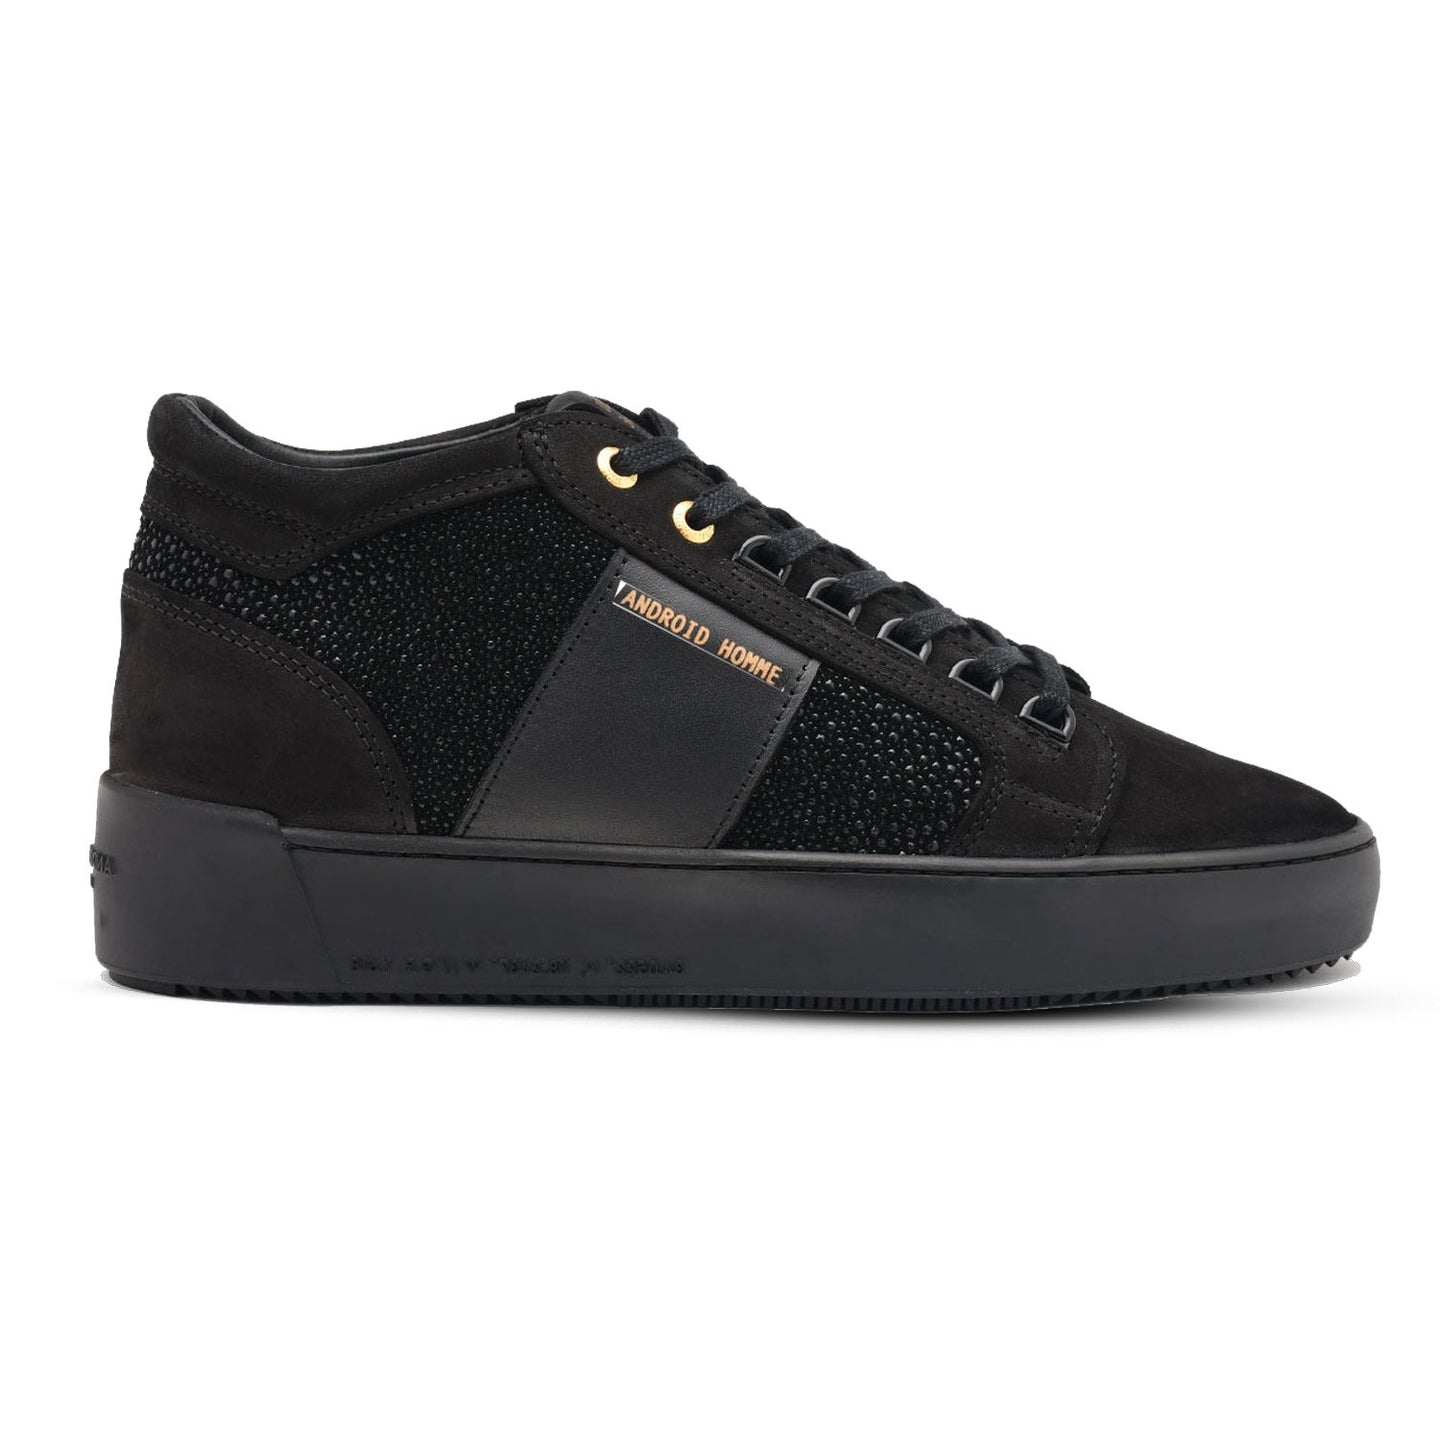 Black Android Homme Propulsion Geo Stingray Trainers